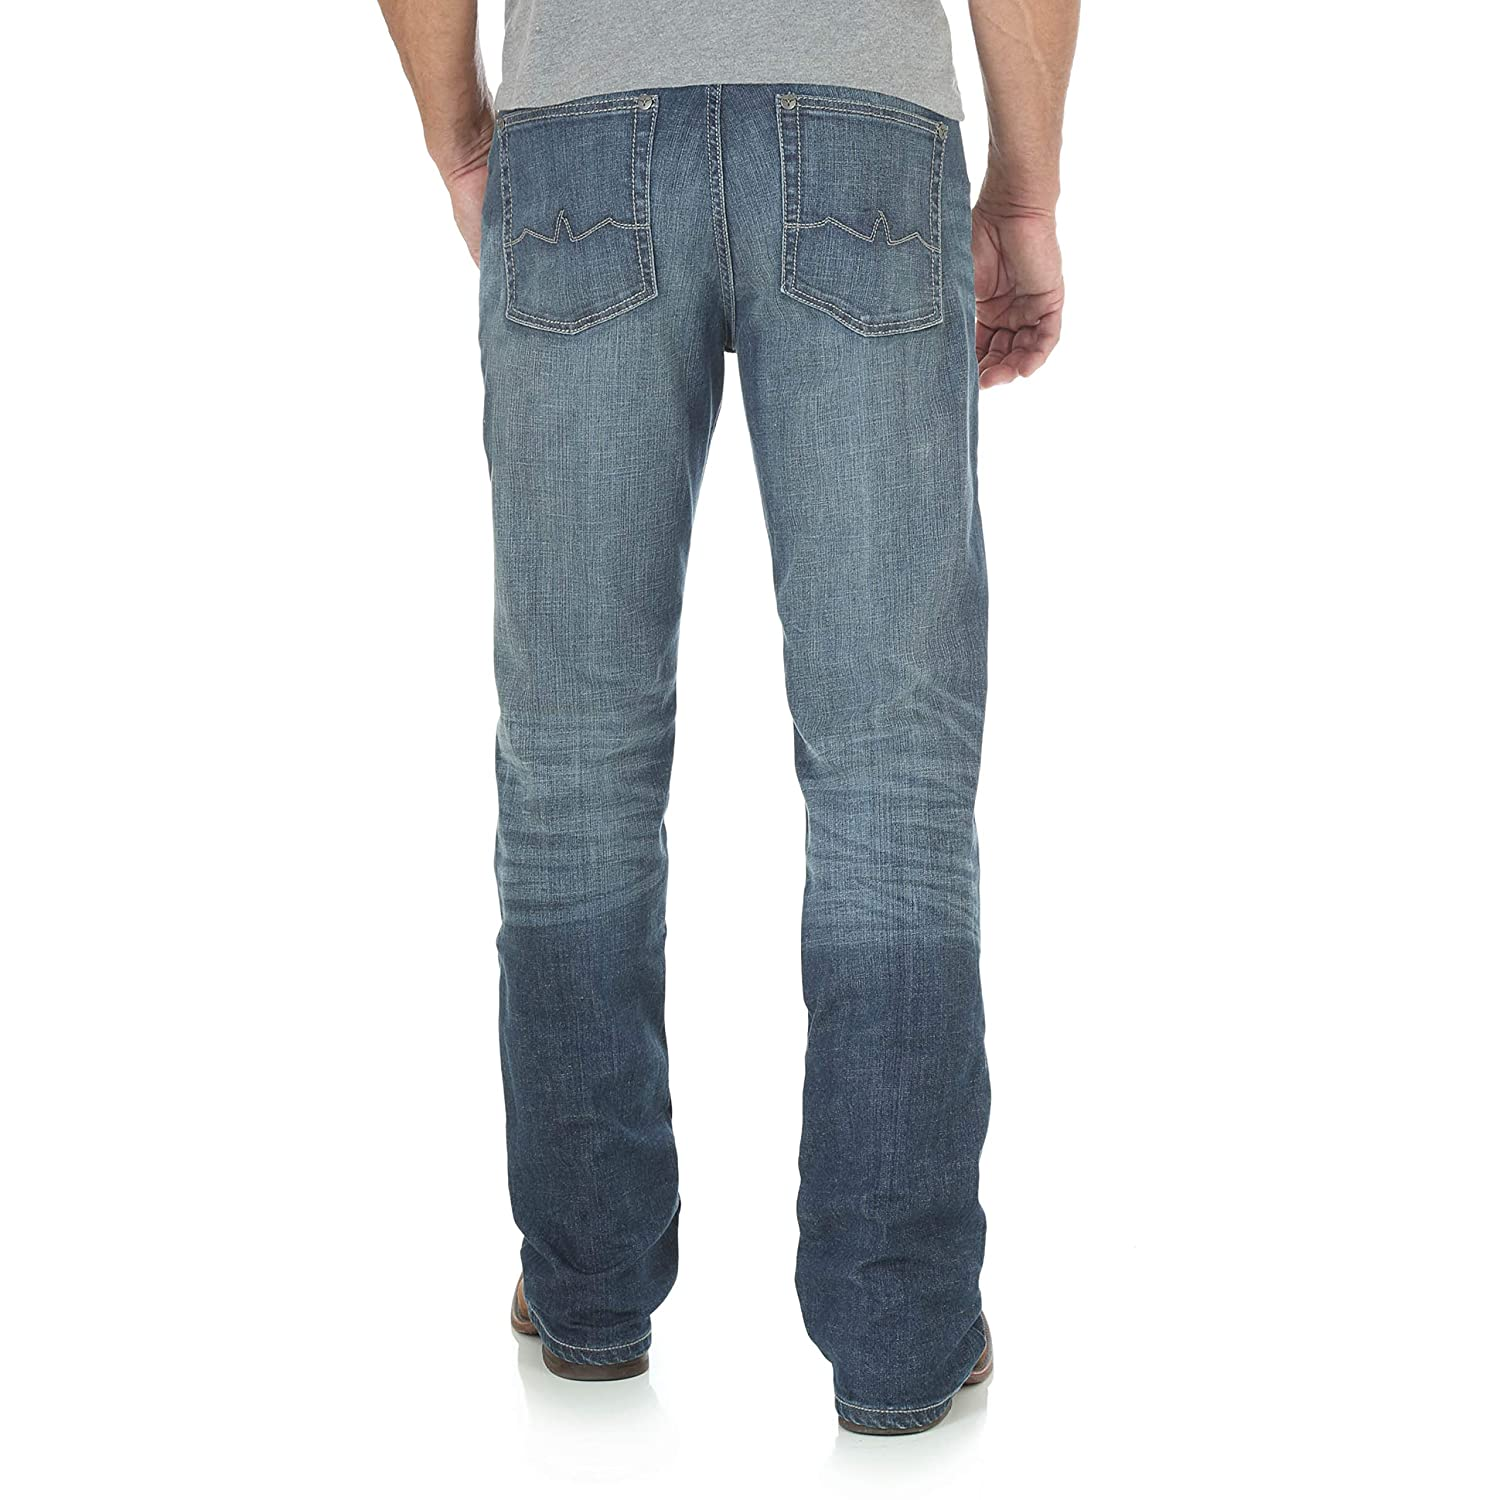 Wrangler Mens Size Tall 20x Vintage Bootcut Jean